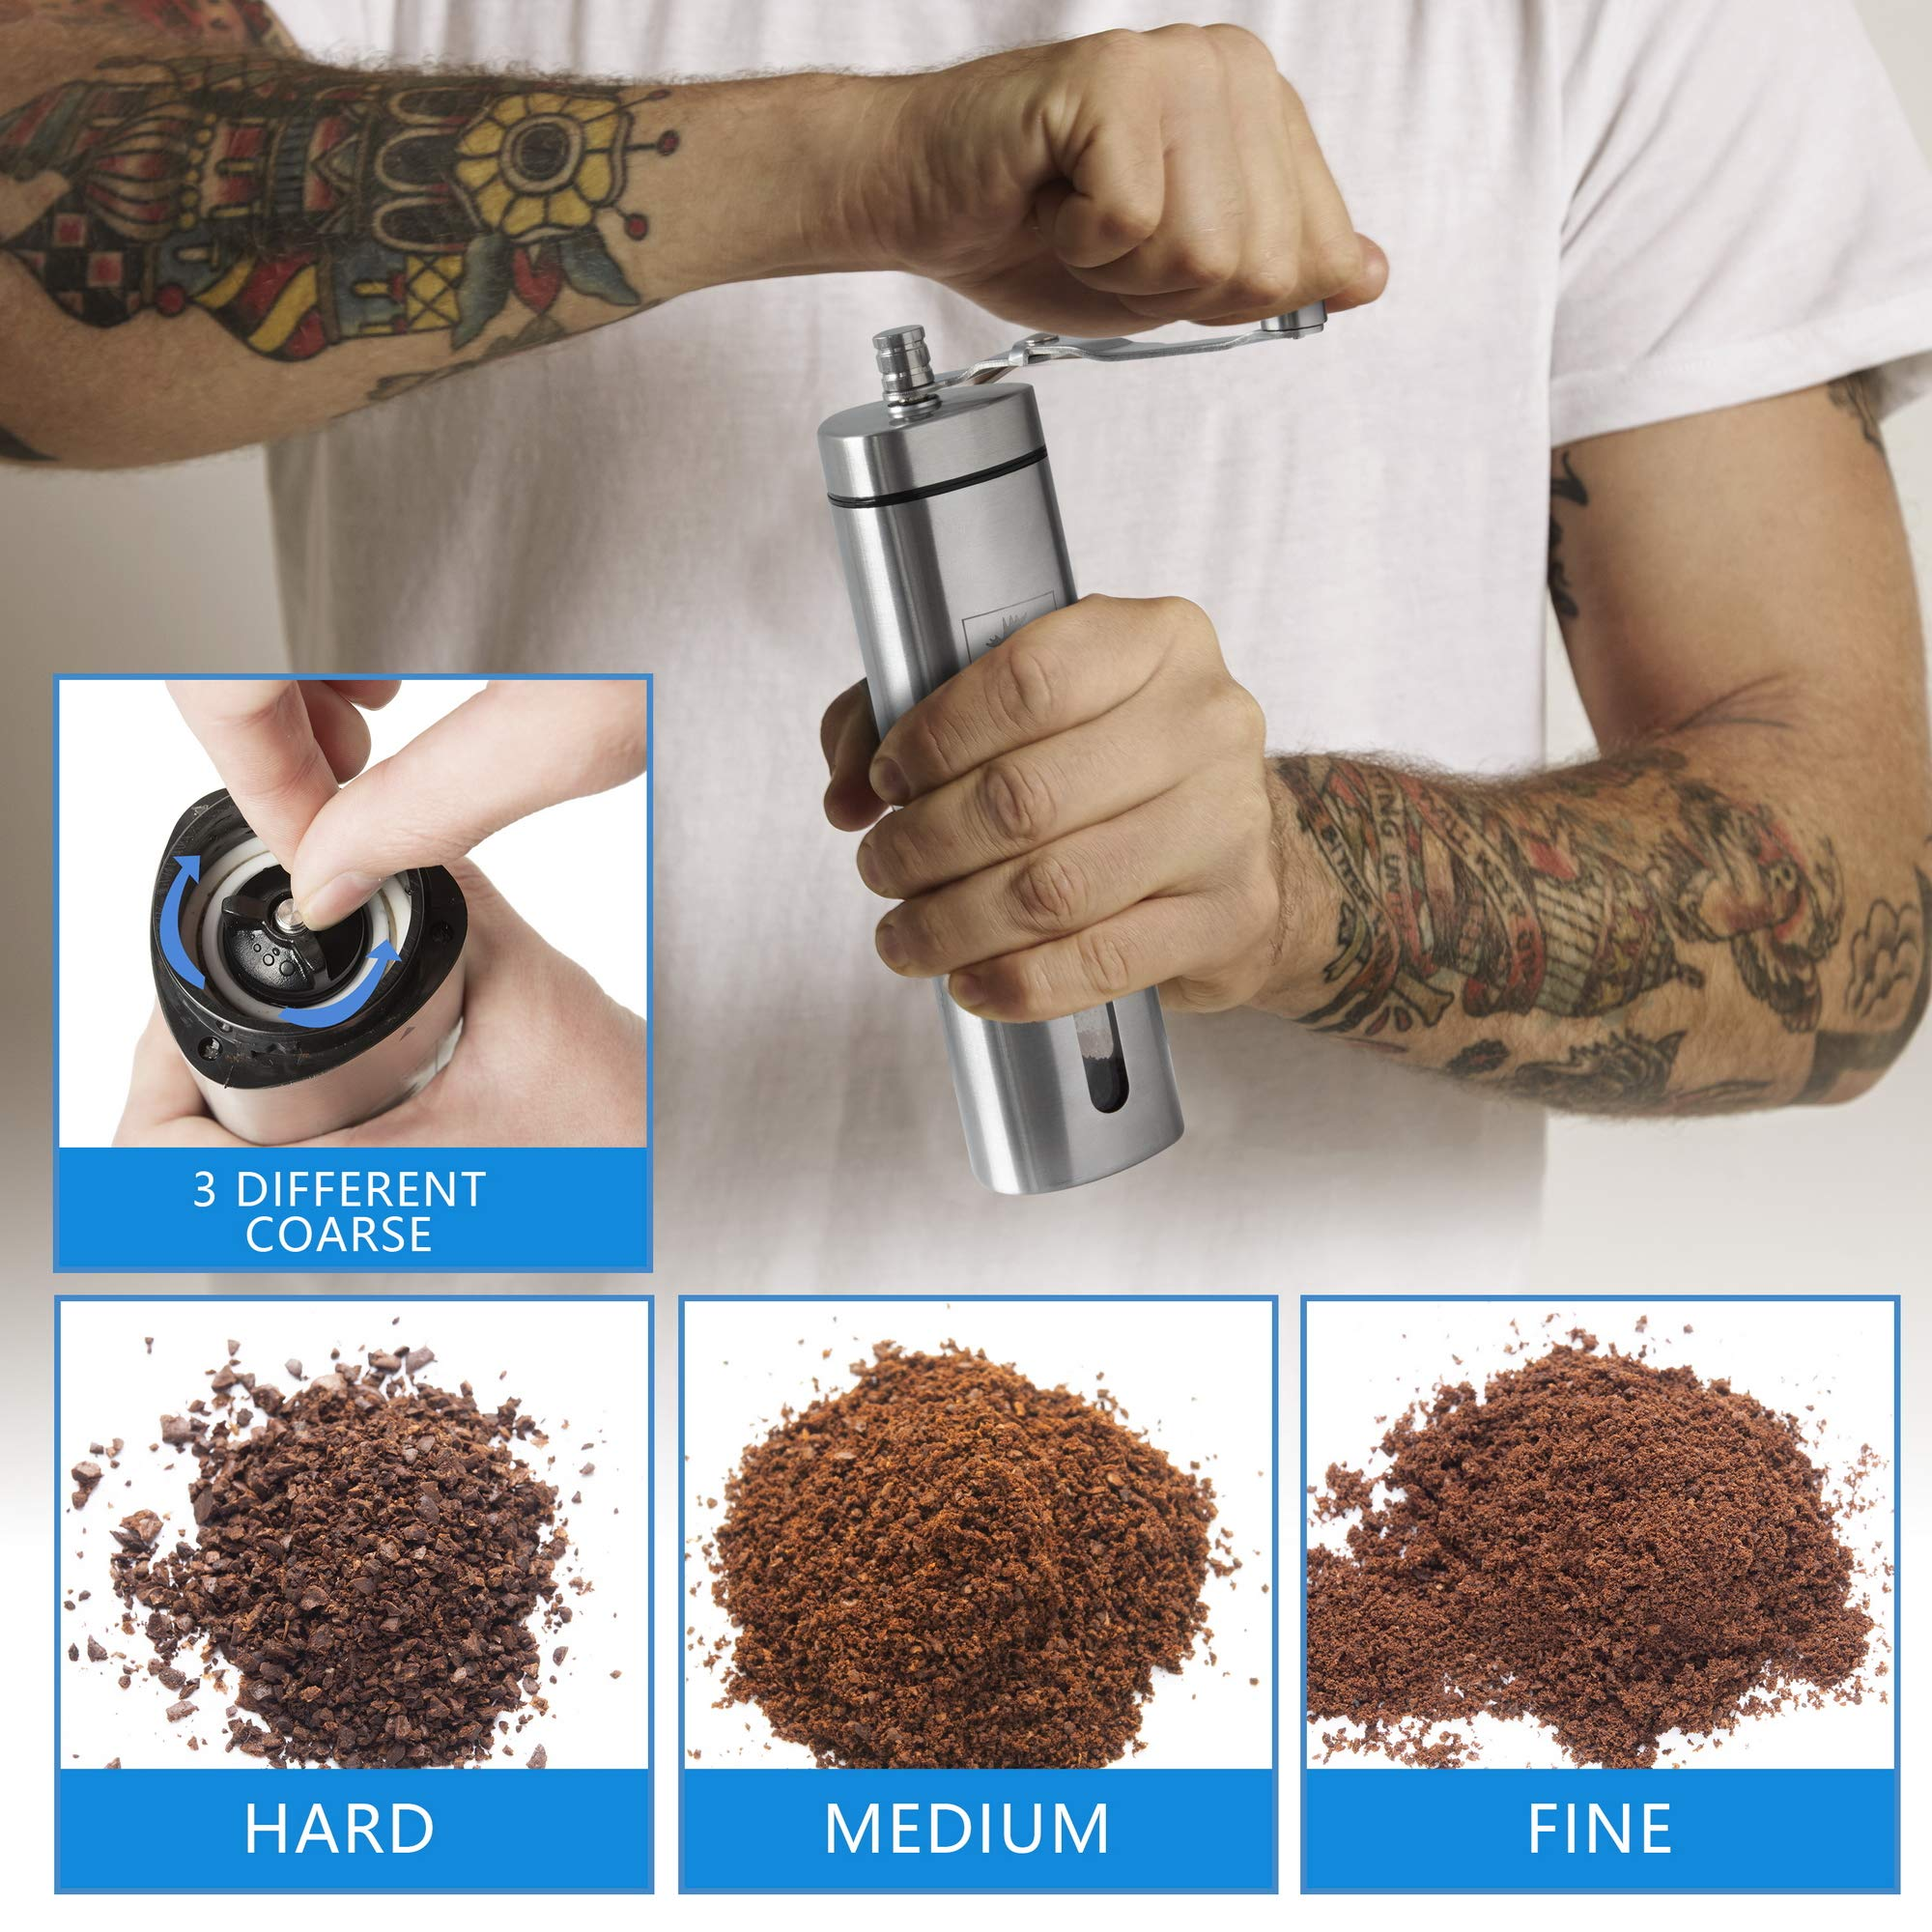 Manual Coffee Grinder by Mainland (Hand Held) Adjustable Fine, Medium, Coarse Grounds | Ceramic Burr Mill for Whole Bean Grinding | Home Kitchen, Office, Travel by Mainland (Image #3)